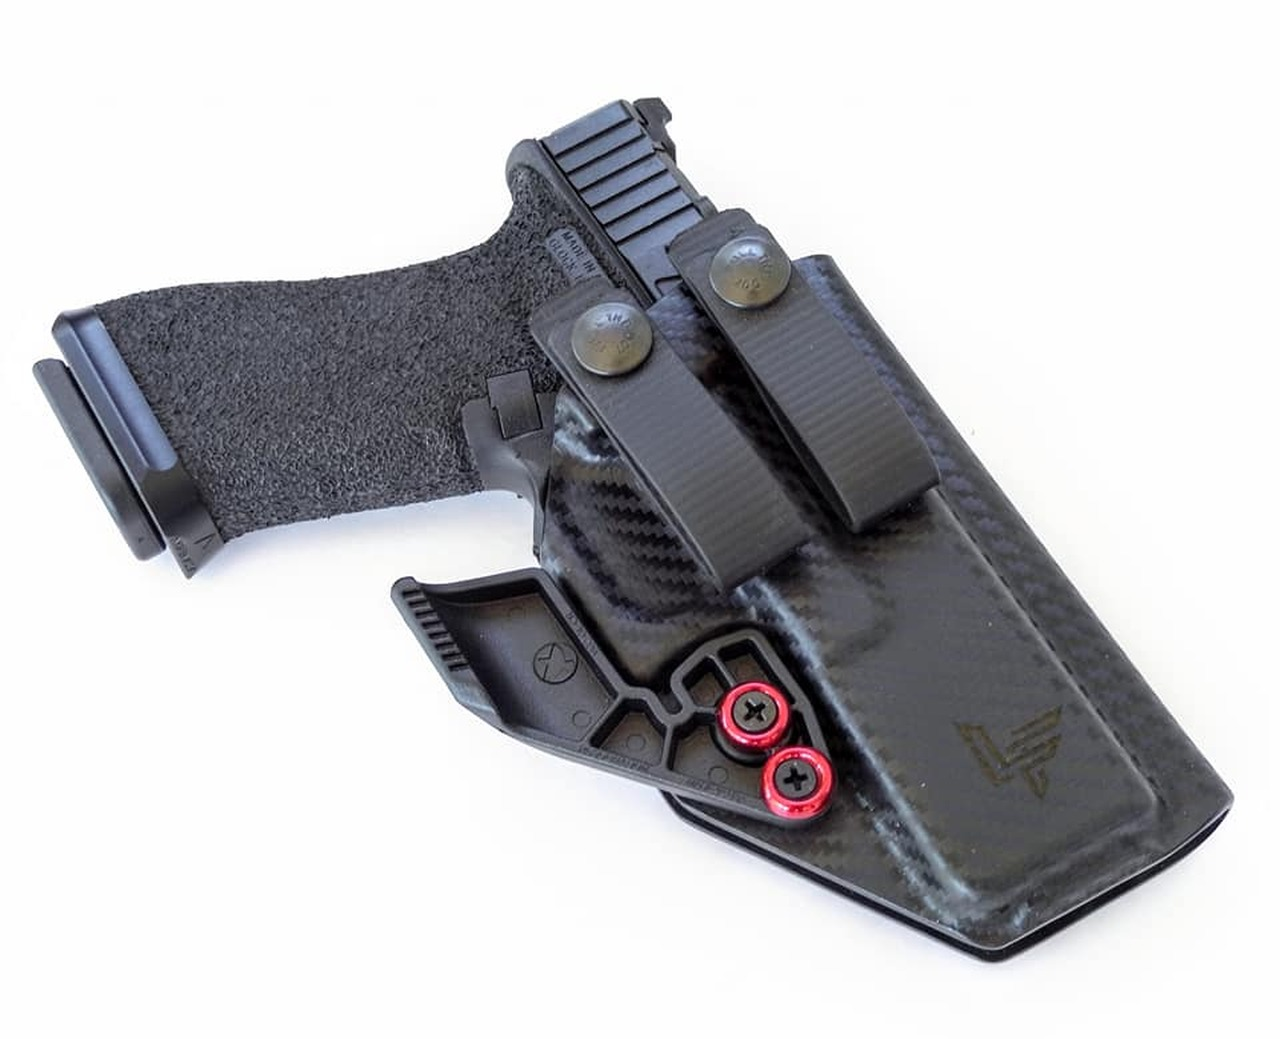 Glock 17 Appendix Carry Holster with Soft Loops